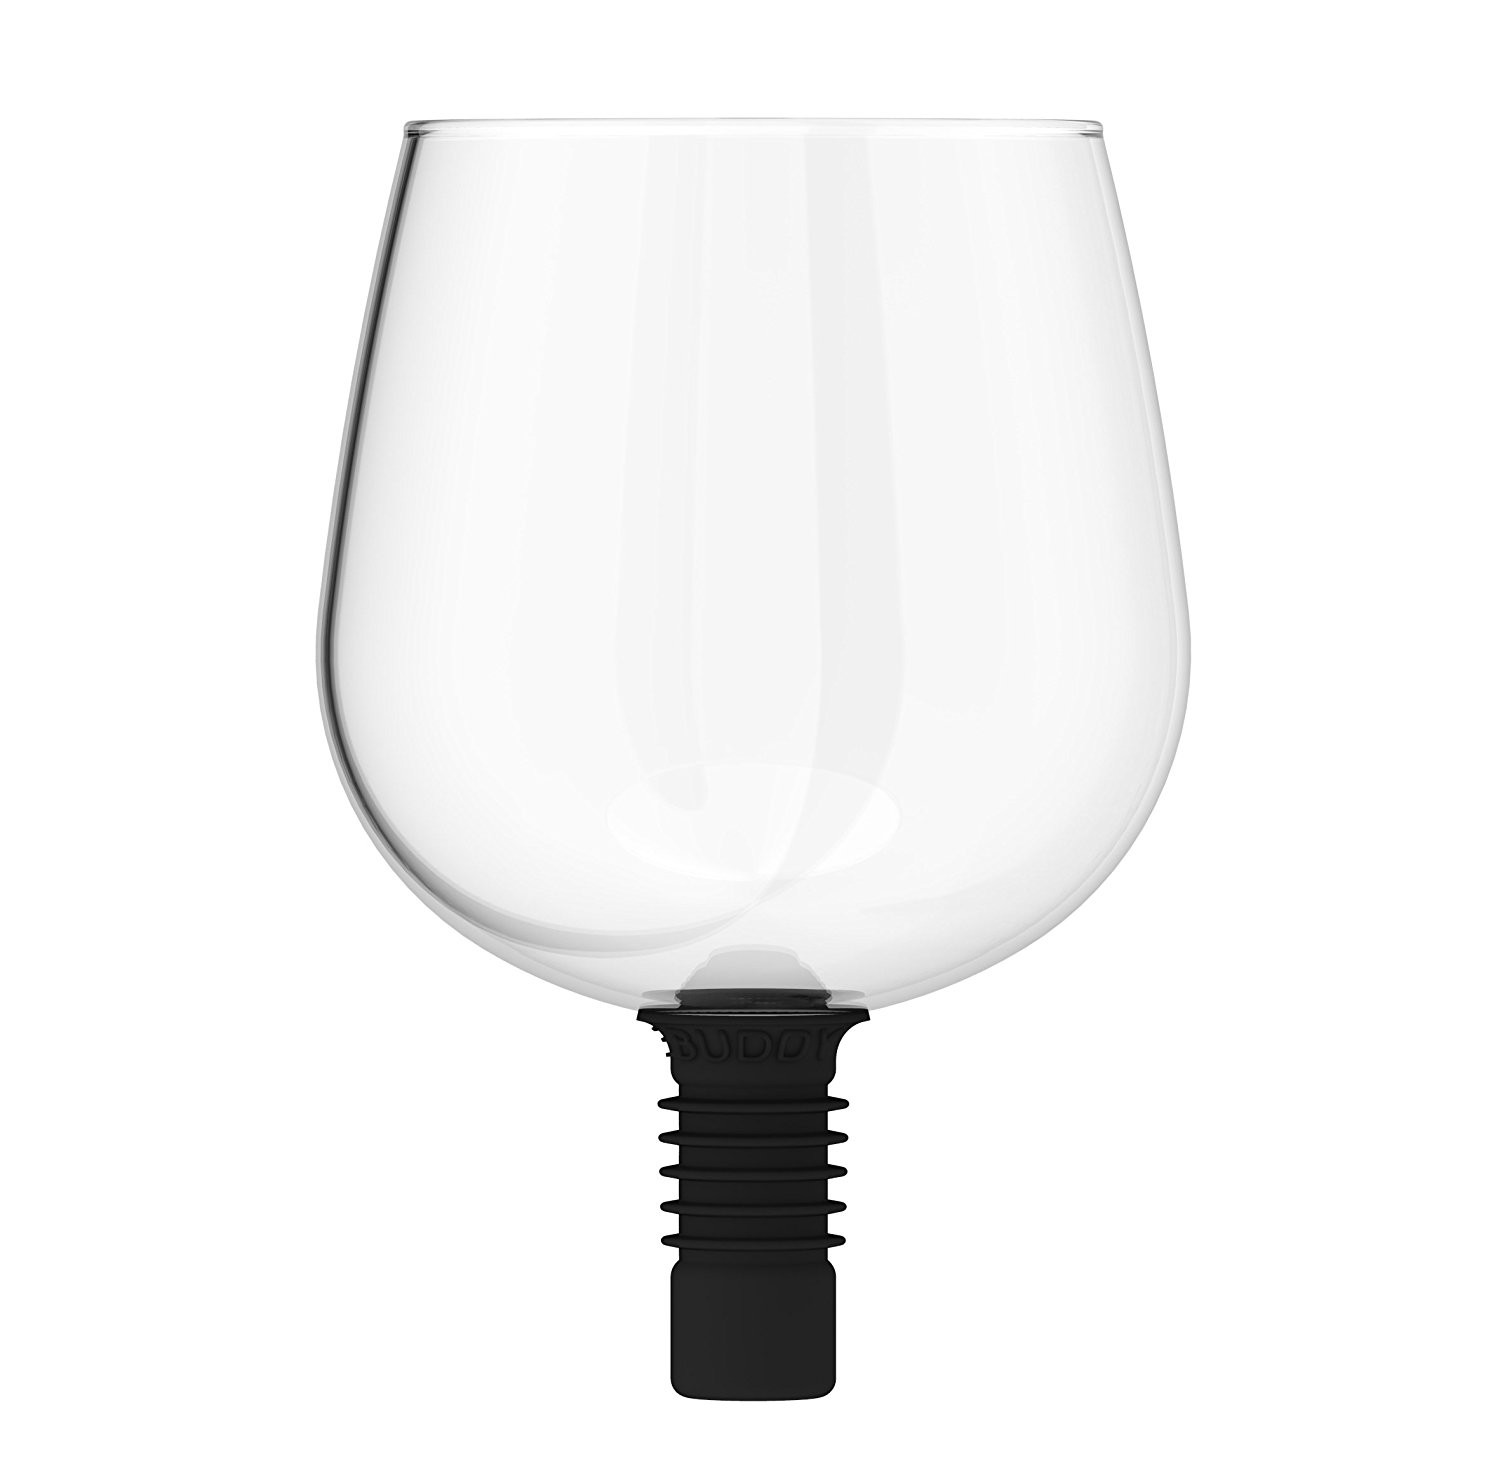 extra large wine glass vase of amazon com guzzle buddy wine bottle glass 16 oz it turns your pertaining to amazon com guzzle buddy wine bottle glass 16 oz it turns your bottle of wine into your wine glass the original as seen on shark tank wine glasses